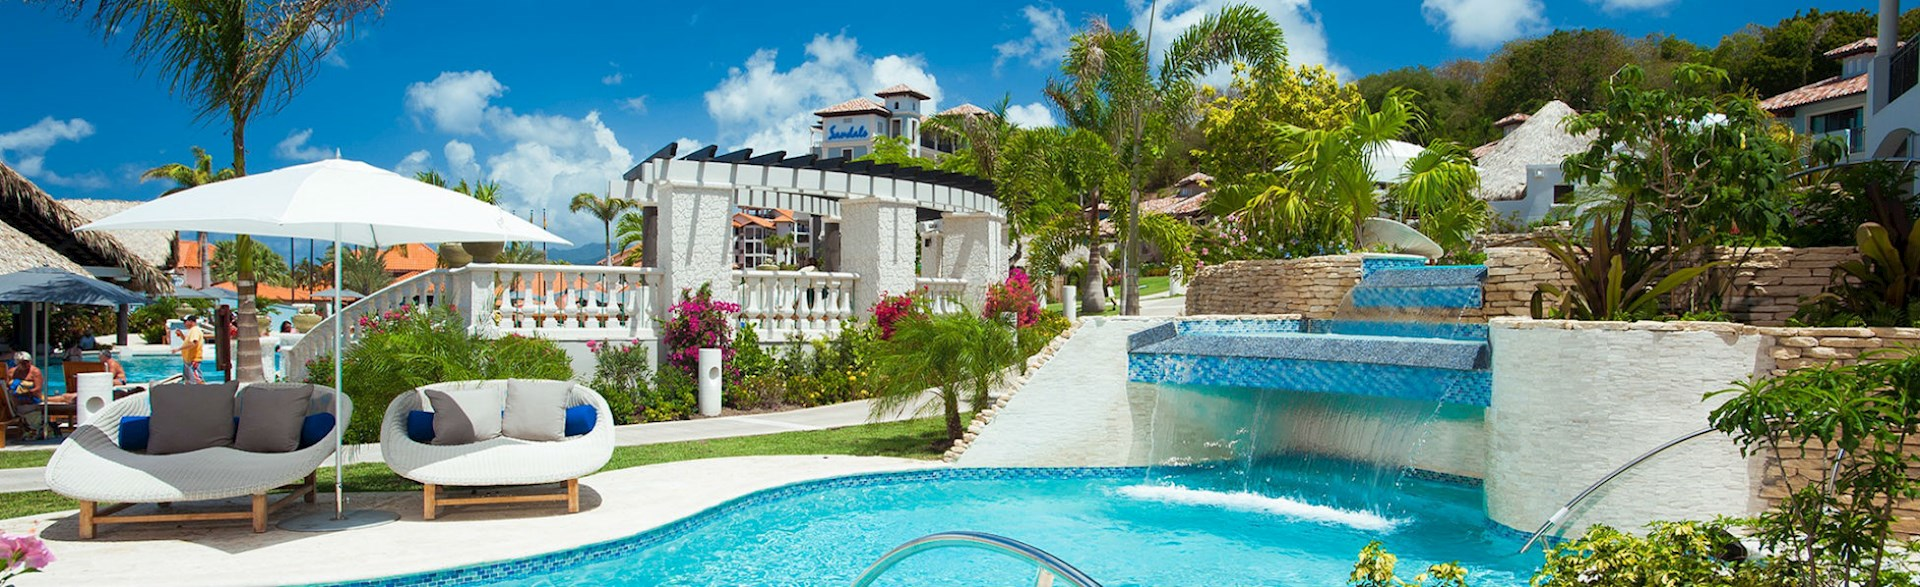 Lasource Resort Grenada 2019 Sandals Offers 2020 srQthd